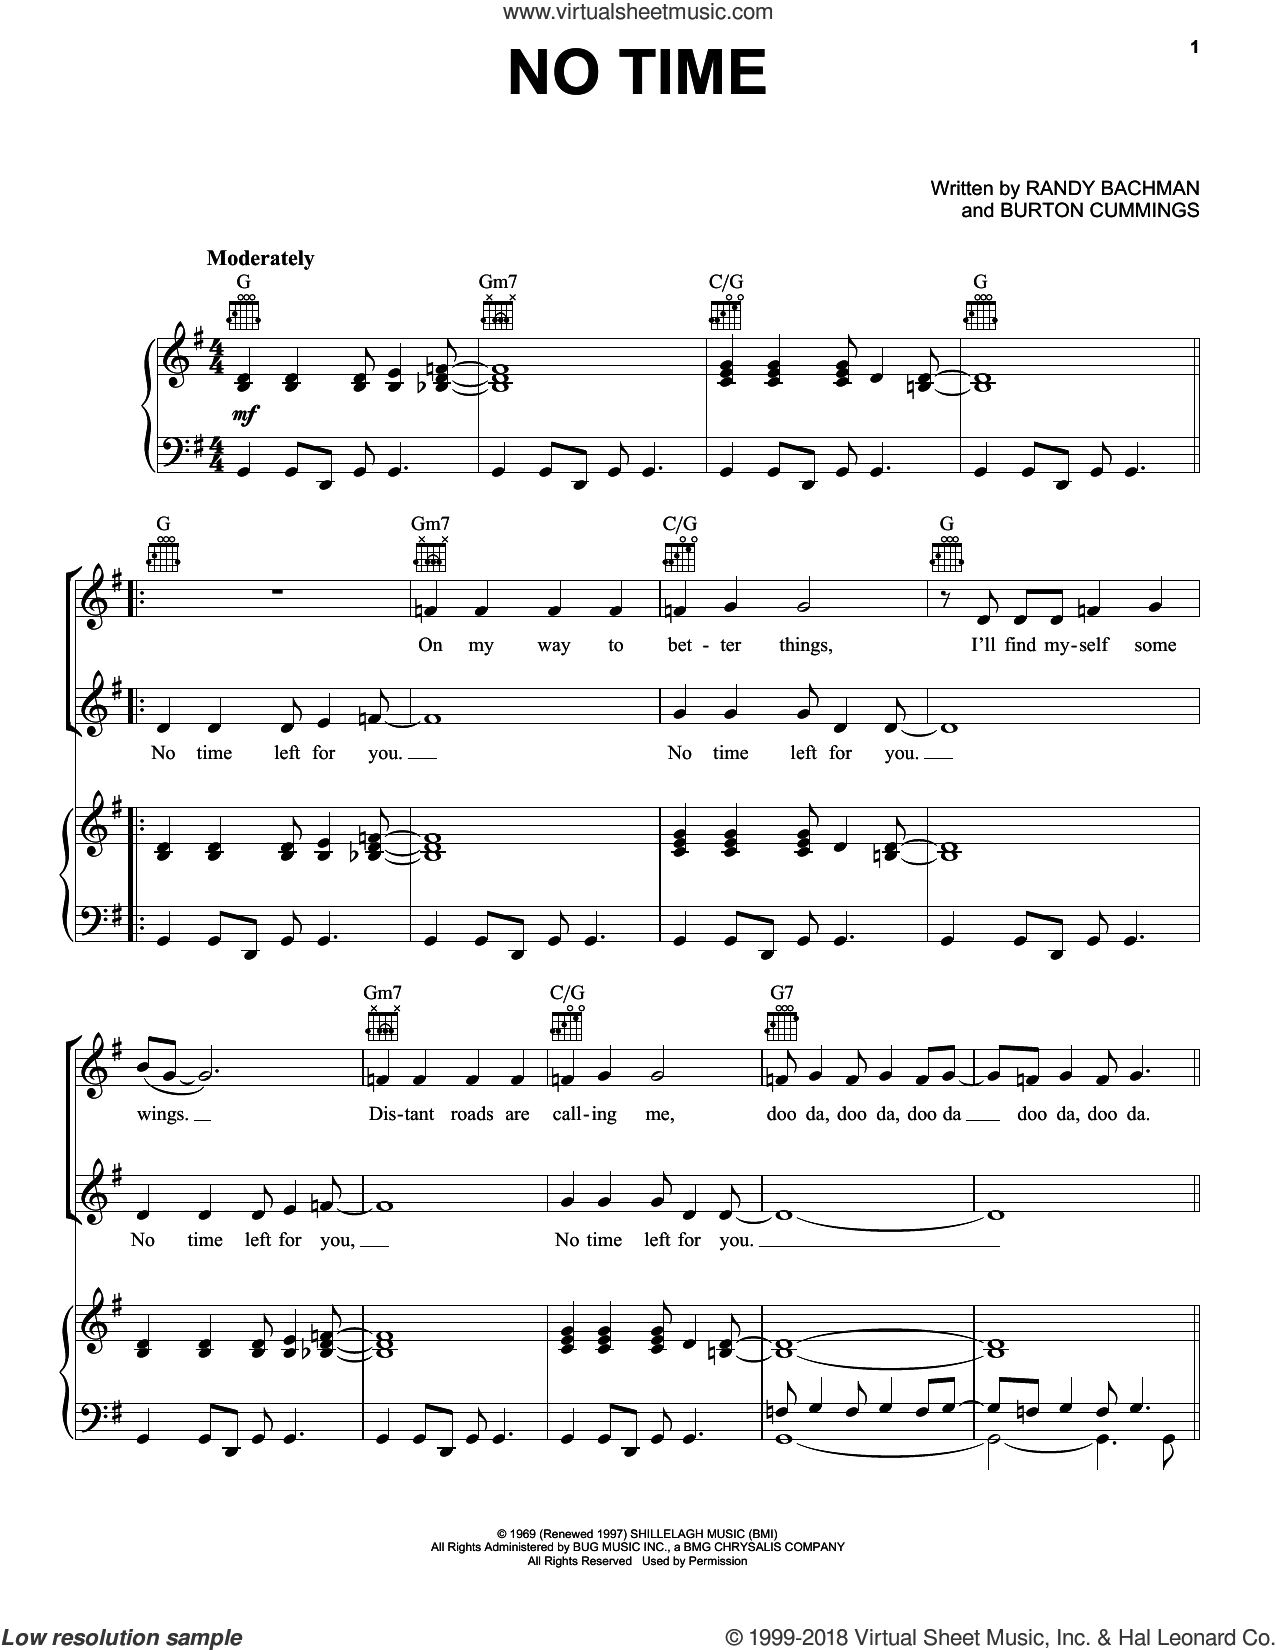 No Time sheet music for voice, piano or guitar by The Guess Who, Burton Cummings and Randy Bachman, intermediate skill level